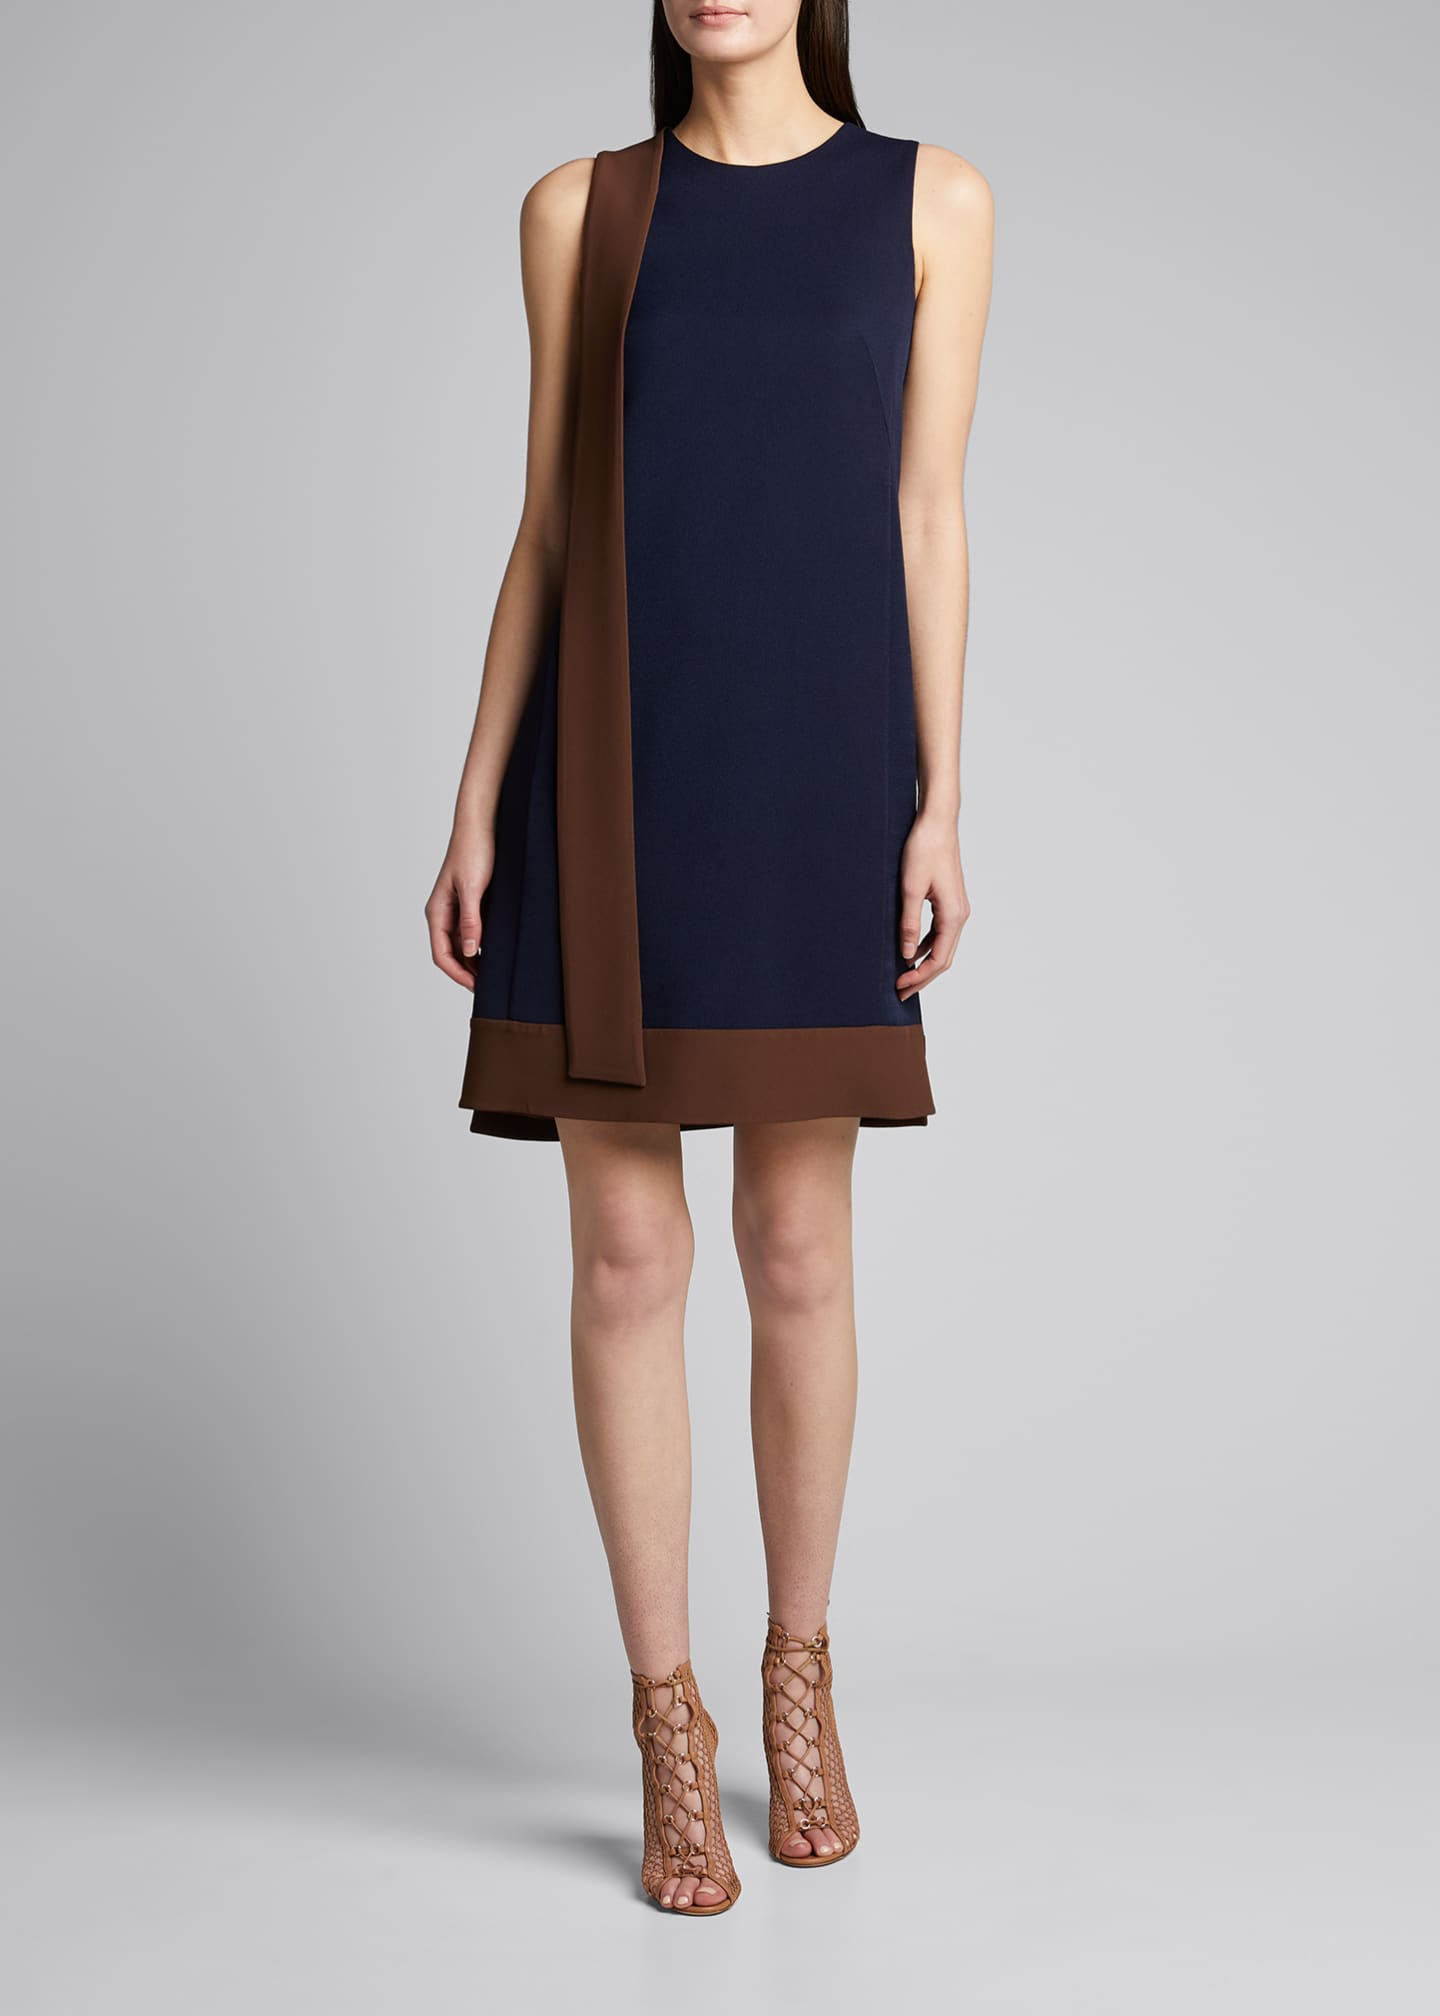 Image 3 of 5: Two-Tone Crepe Dress